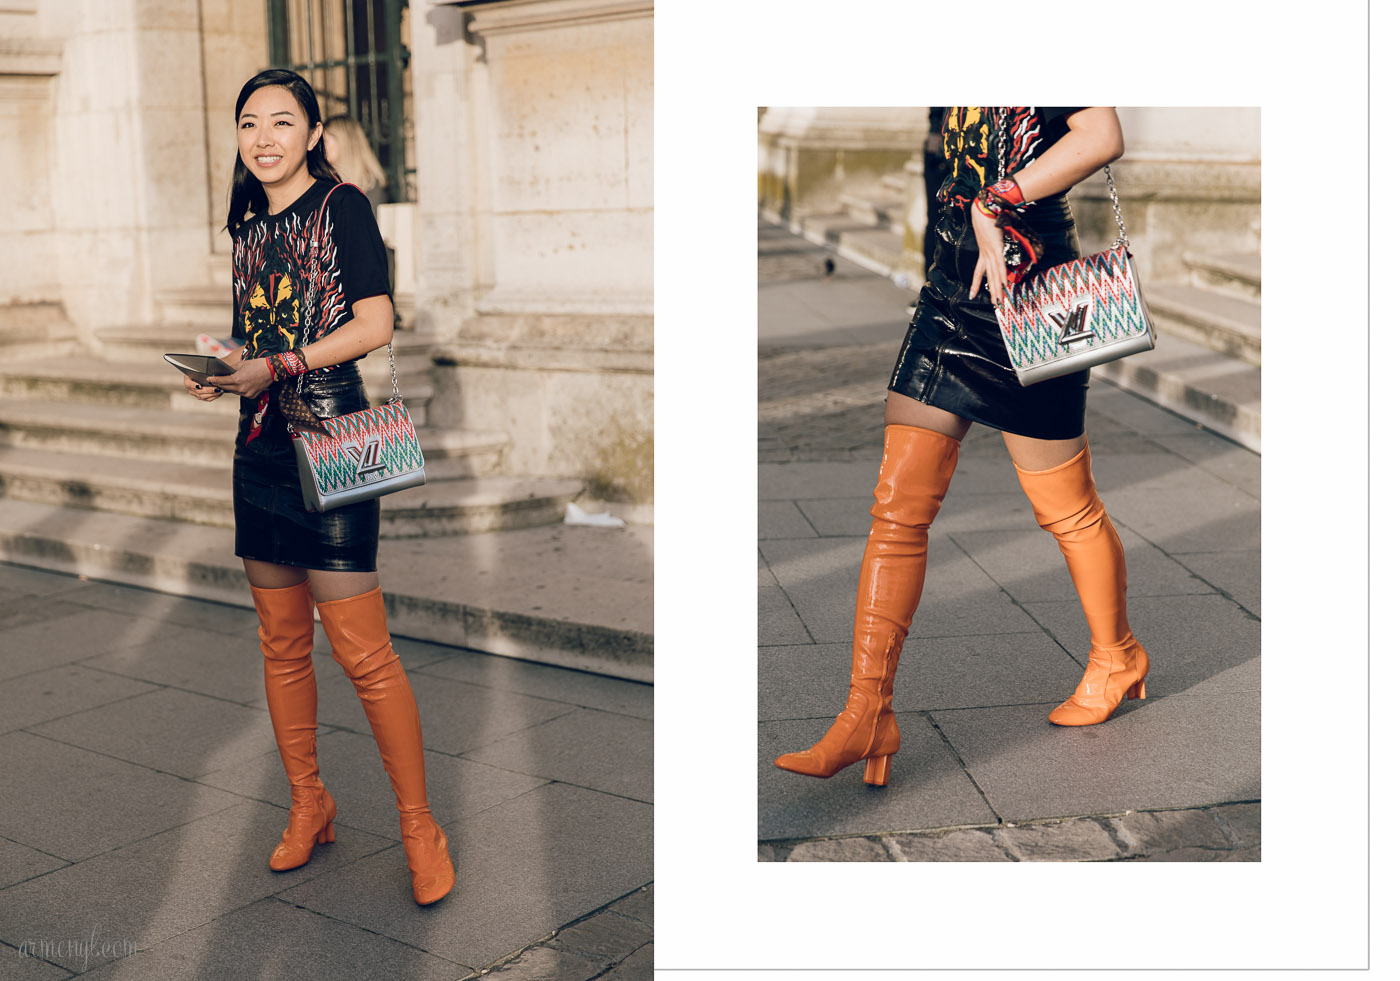 Street Style Fall Fashion Looks at Louis Vuitton SS 2018 Show in Paris photo by Fashion Photographer Armenyl